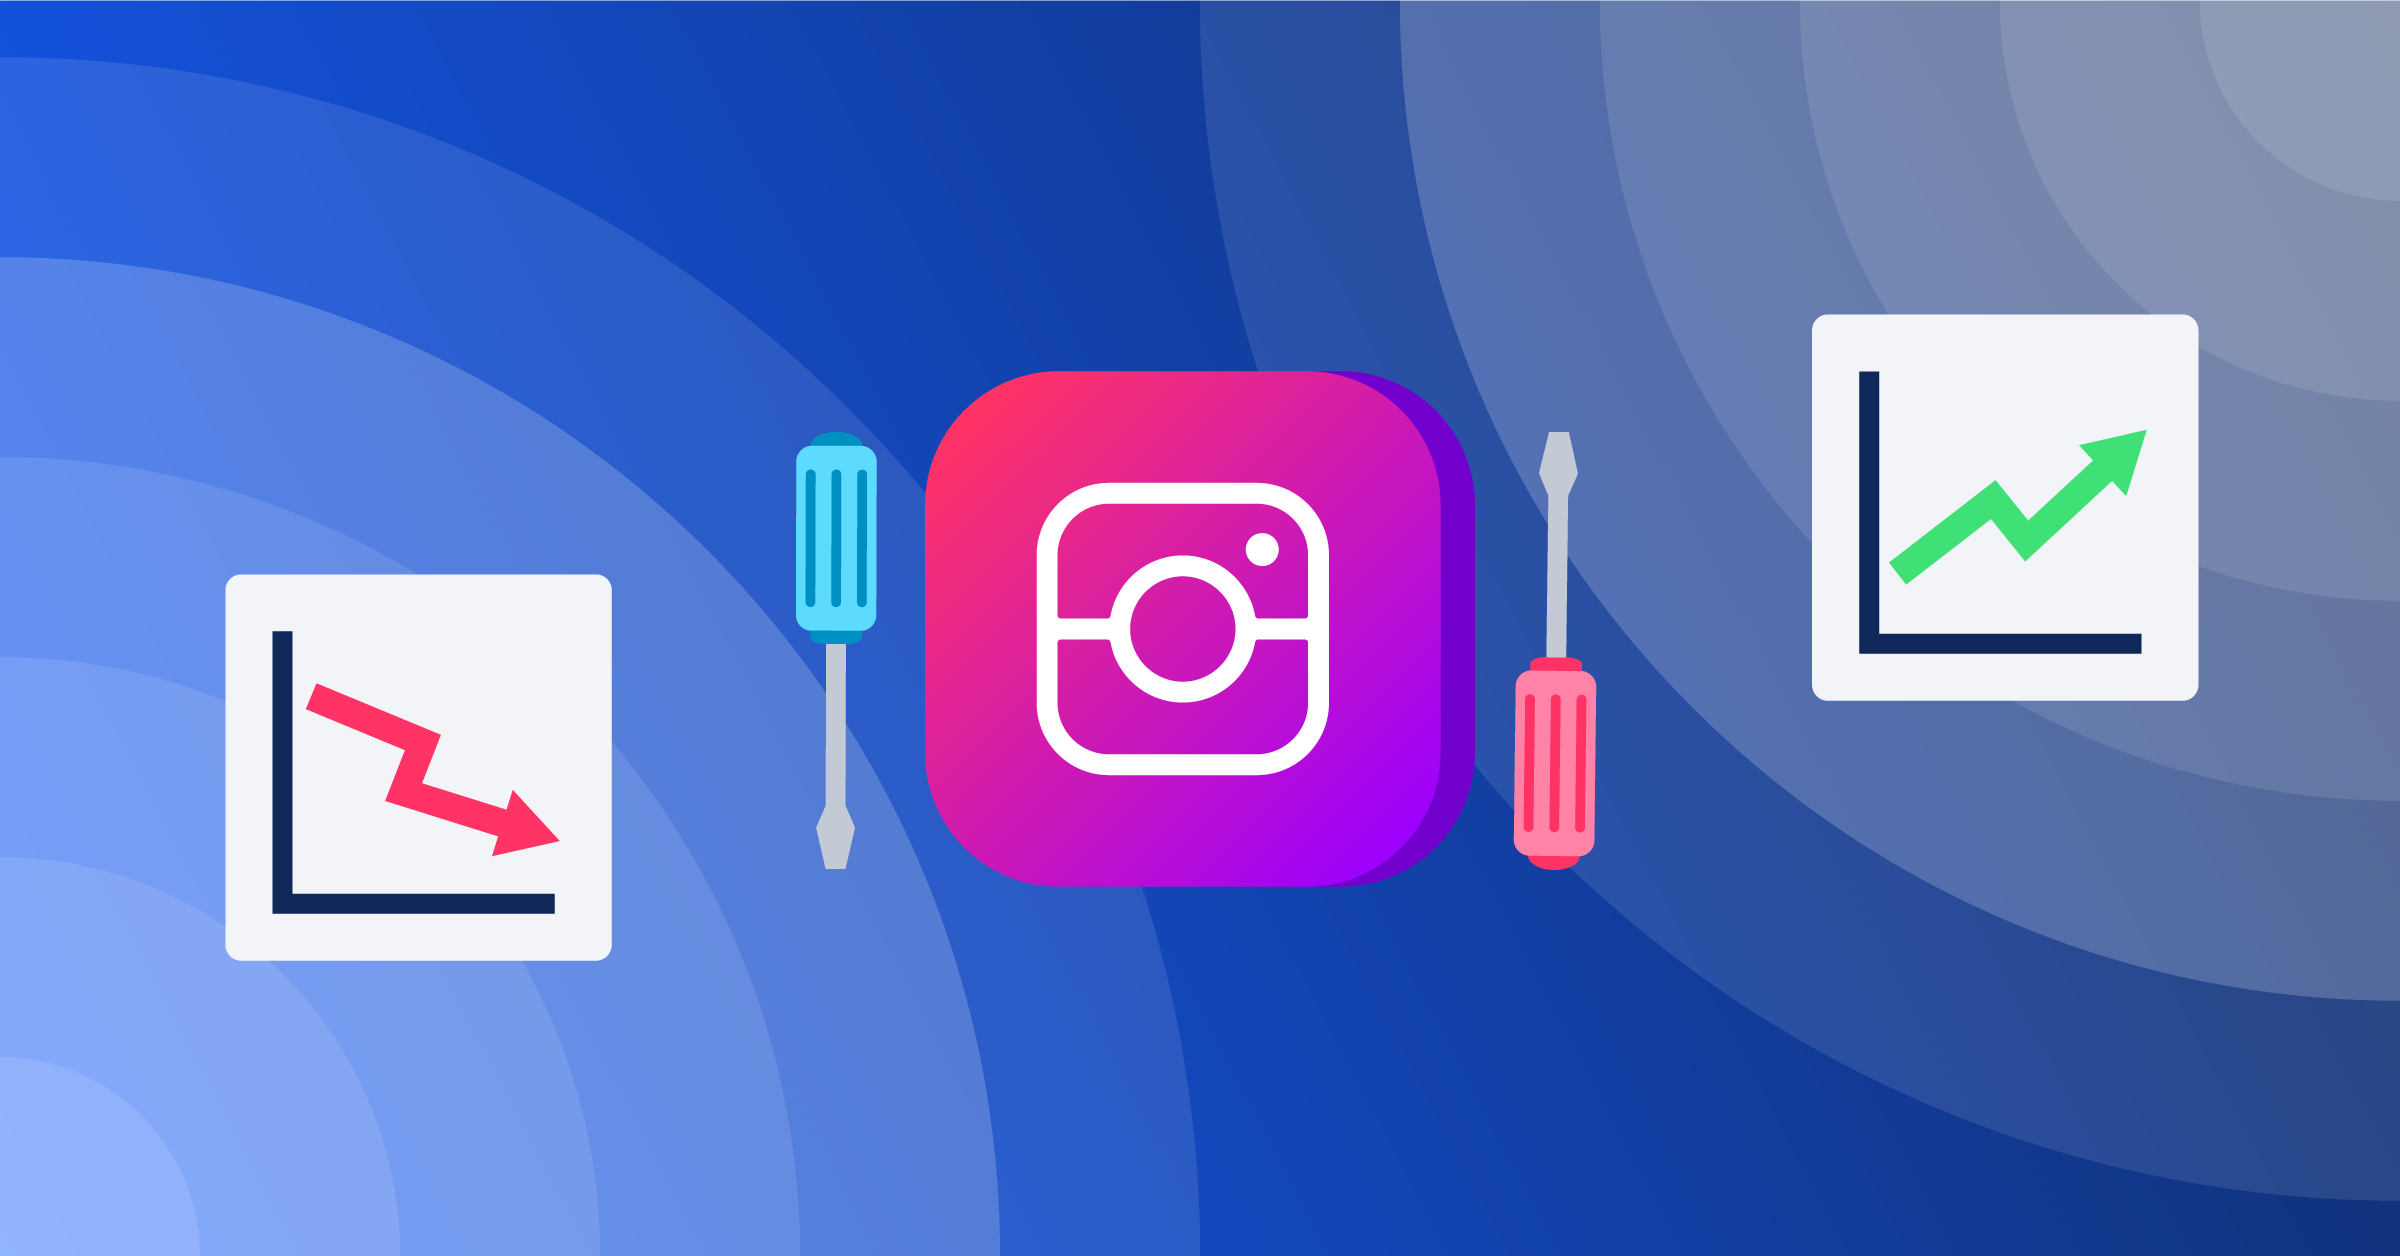 How to Use Instagram Like a PRO